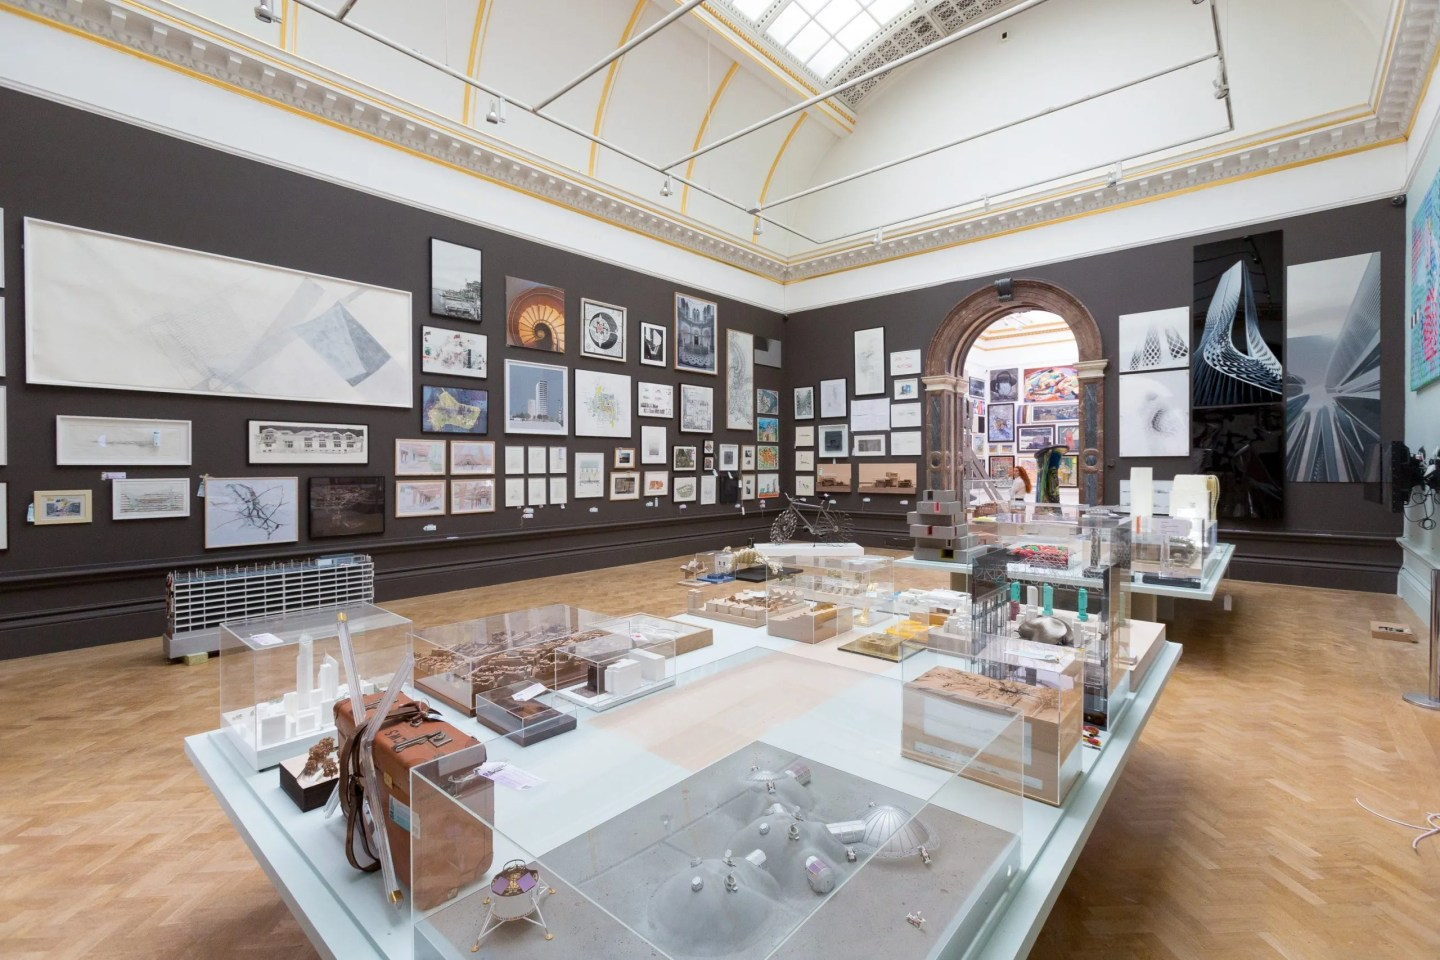 Architecture Room, Royal Academy Summer Exhibition 2014 © Benedict Johnson